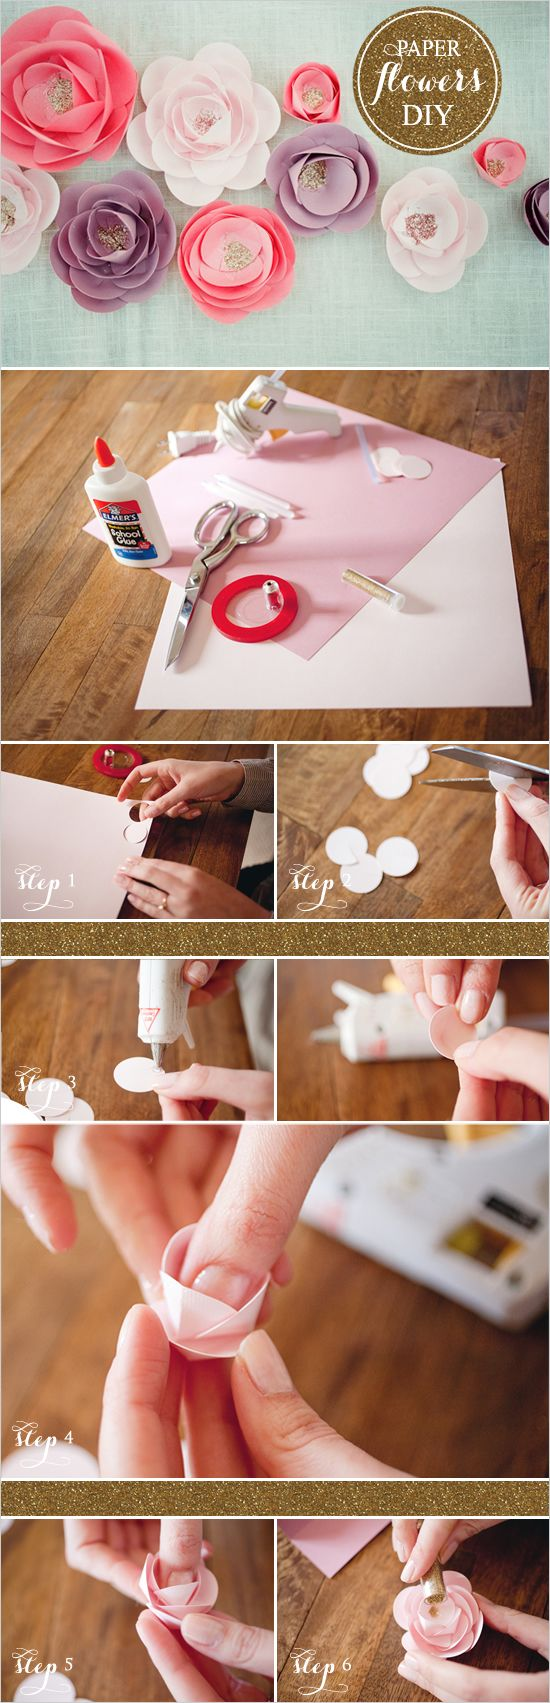 a lovely #DIY on #paper #flowers